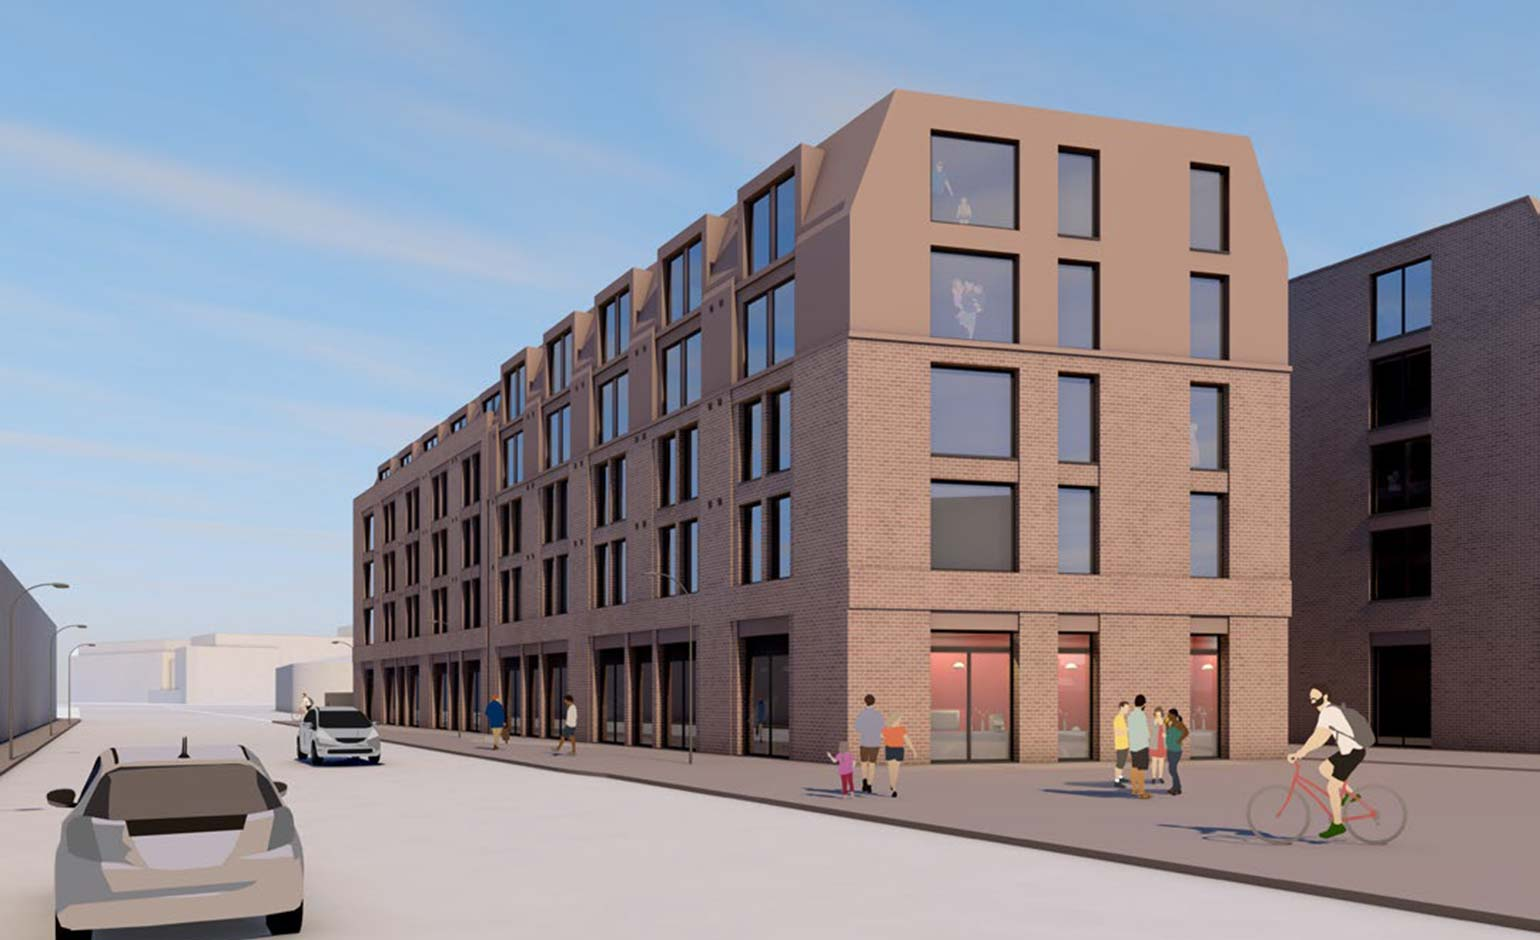 Plans submitted to build student accommodation on Mini dealership site